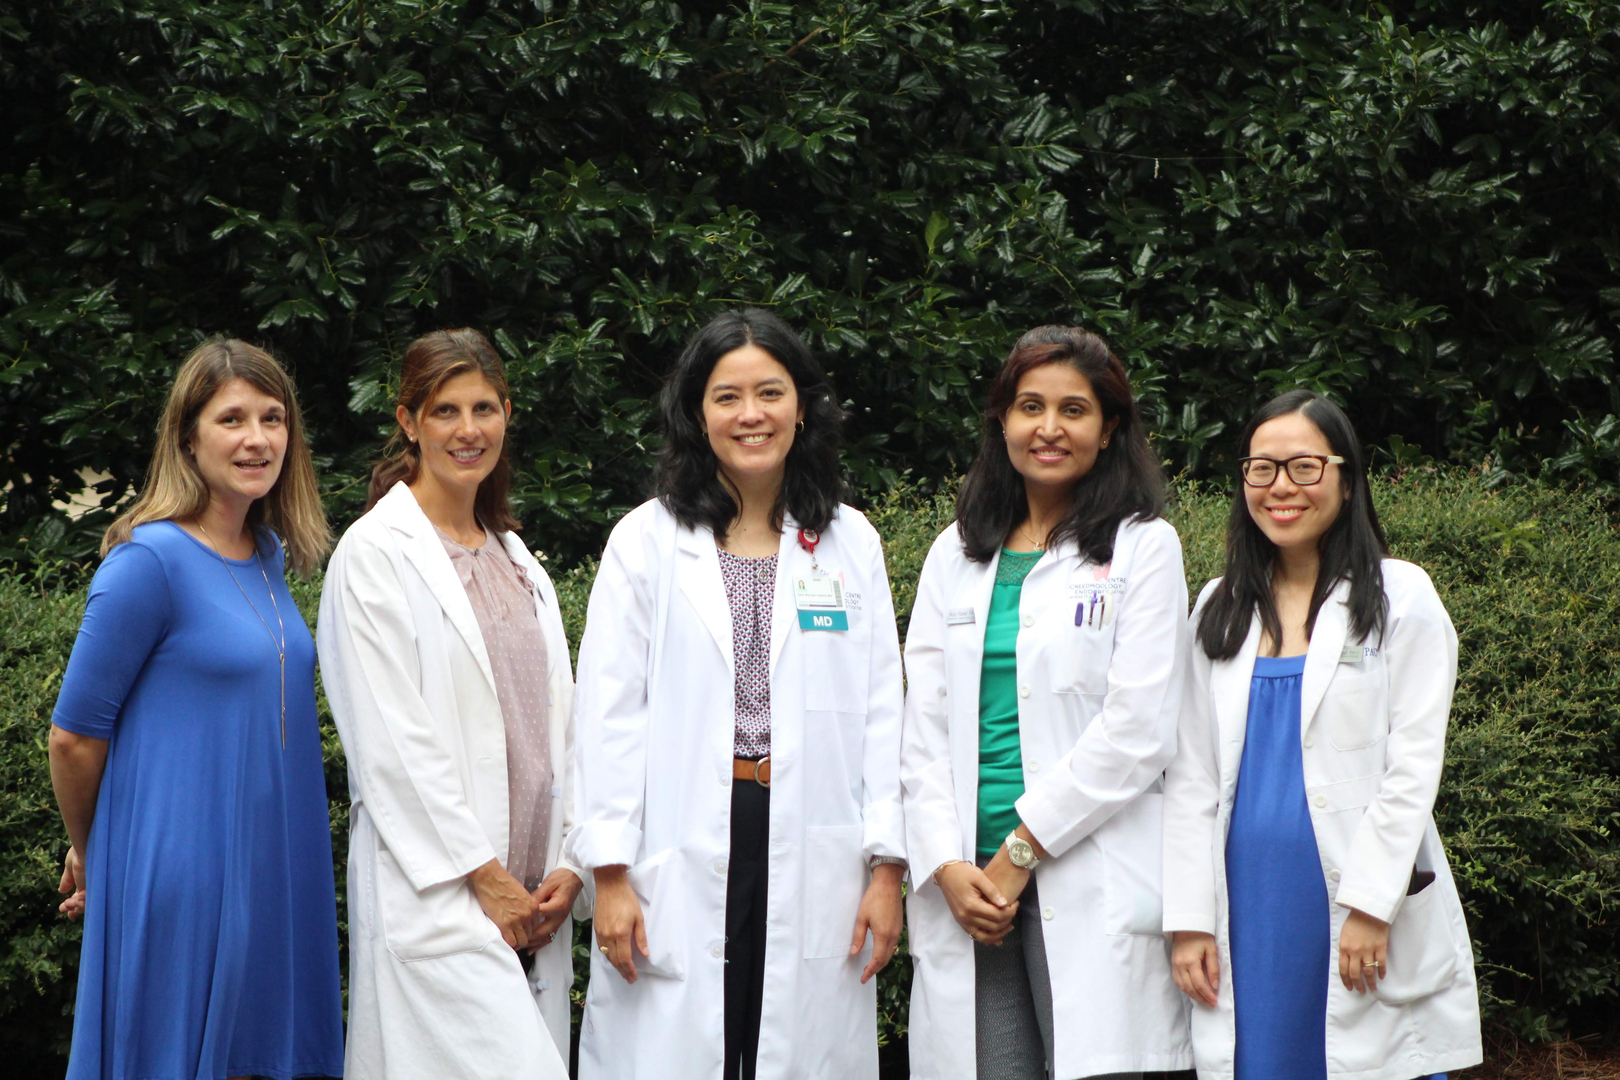 Creedmoor Centre Endocrinology in Raleigh, NC